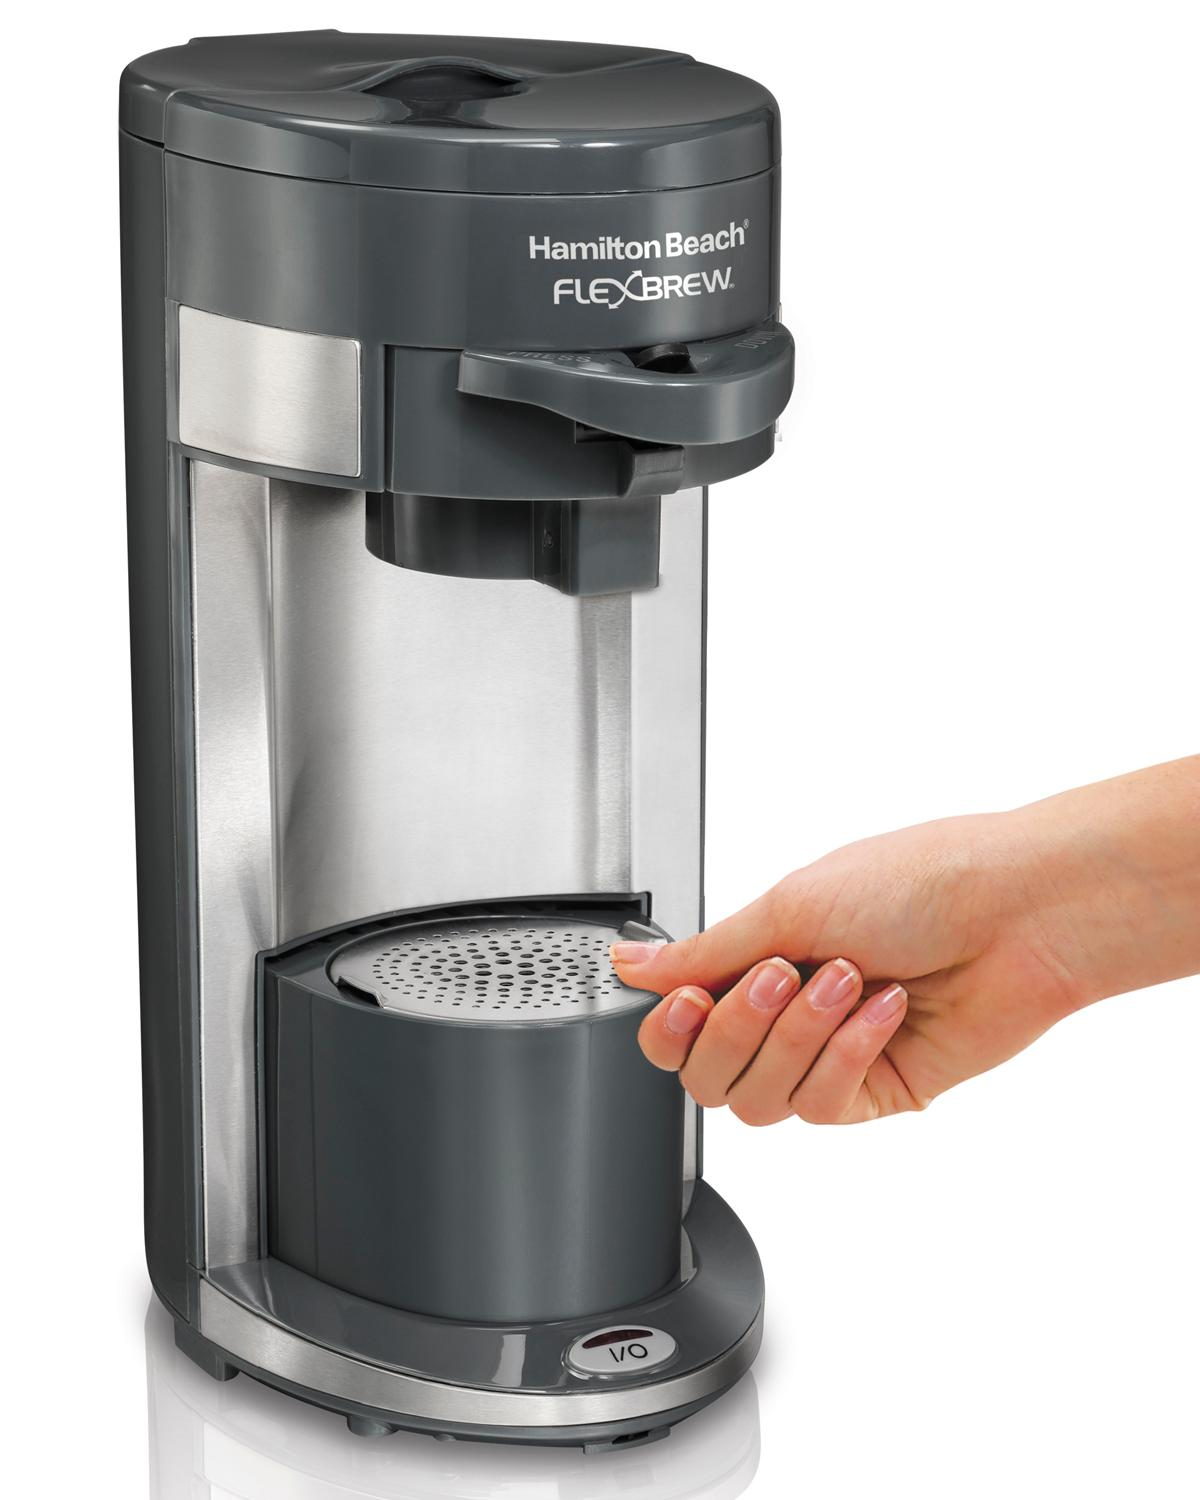 Amazon.com: Hamilton Beach Coffee Maker, Flex Brew Single-Serve (49963): Kitchen & Dining